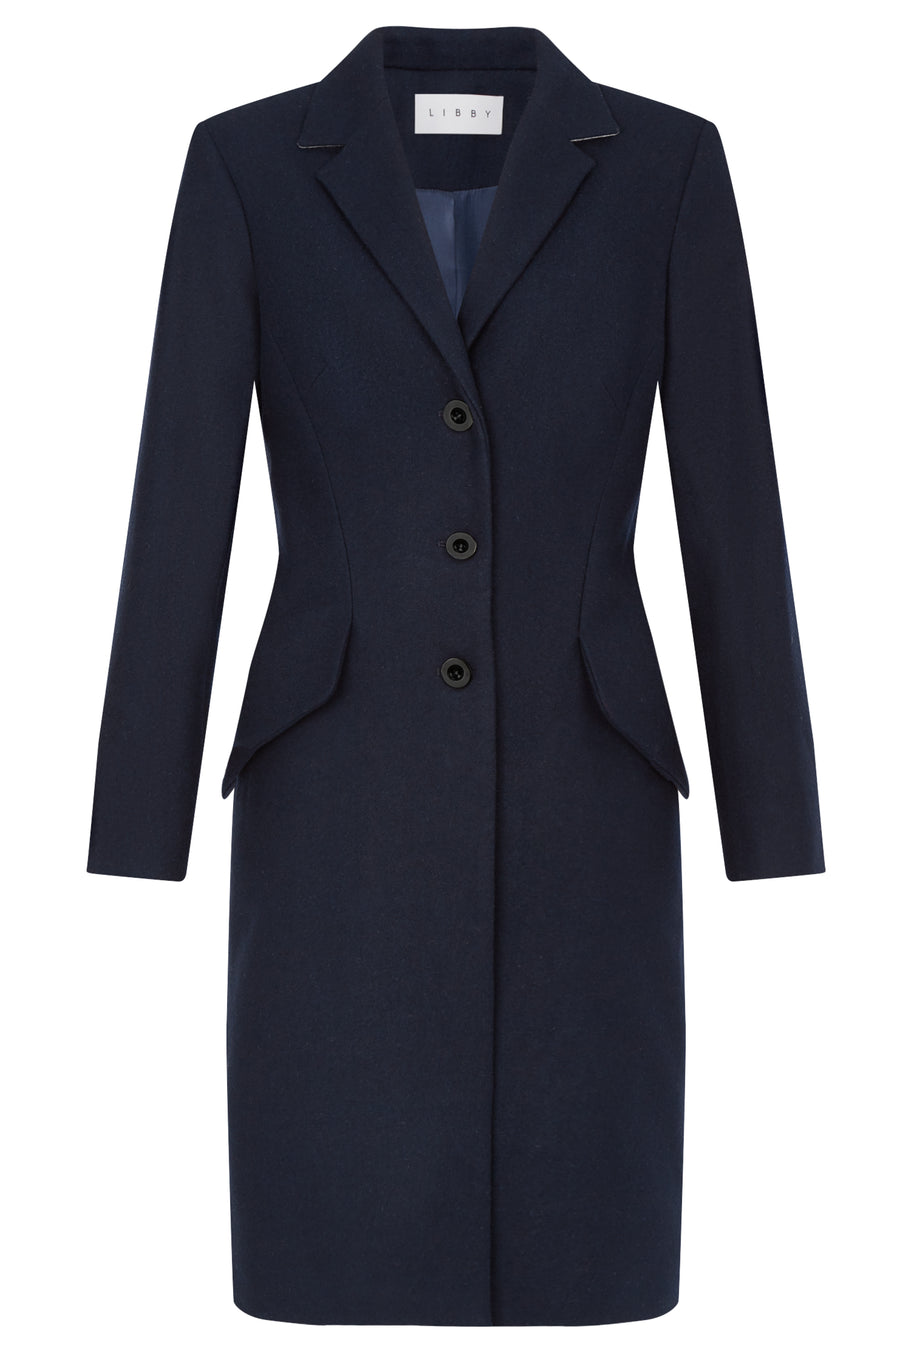 Trafalgar Navy Wool Coat